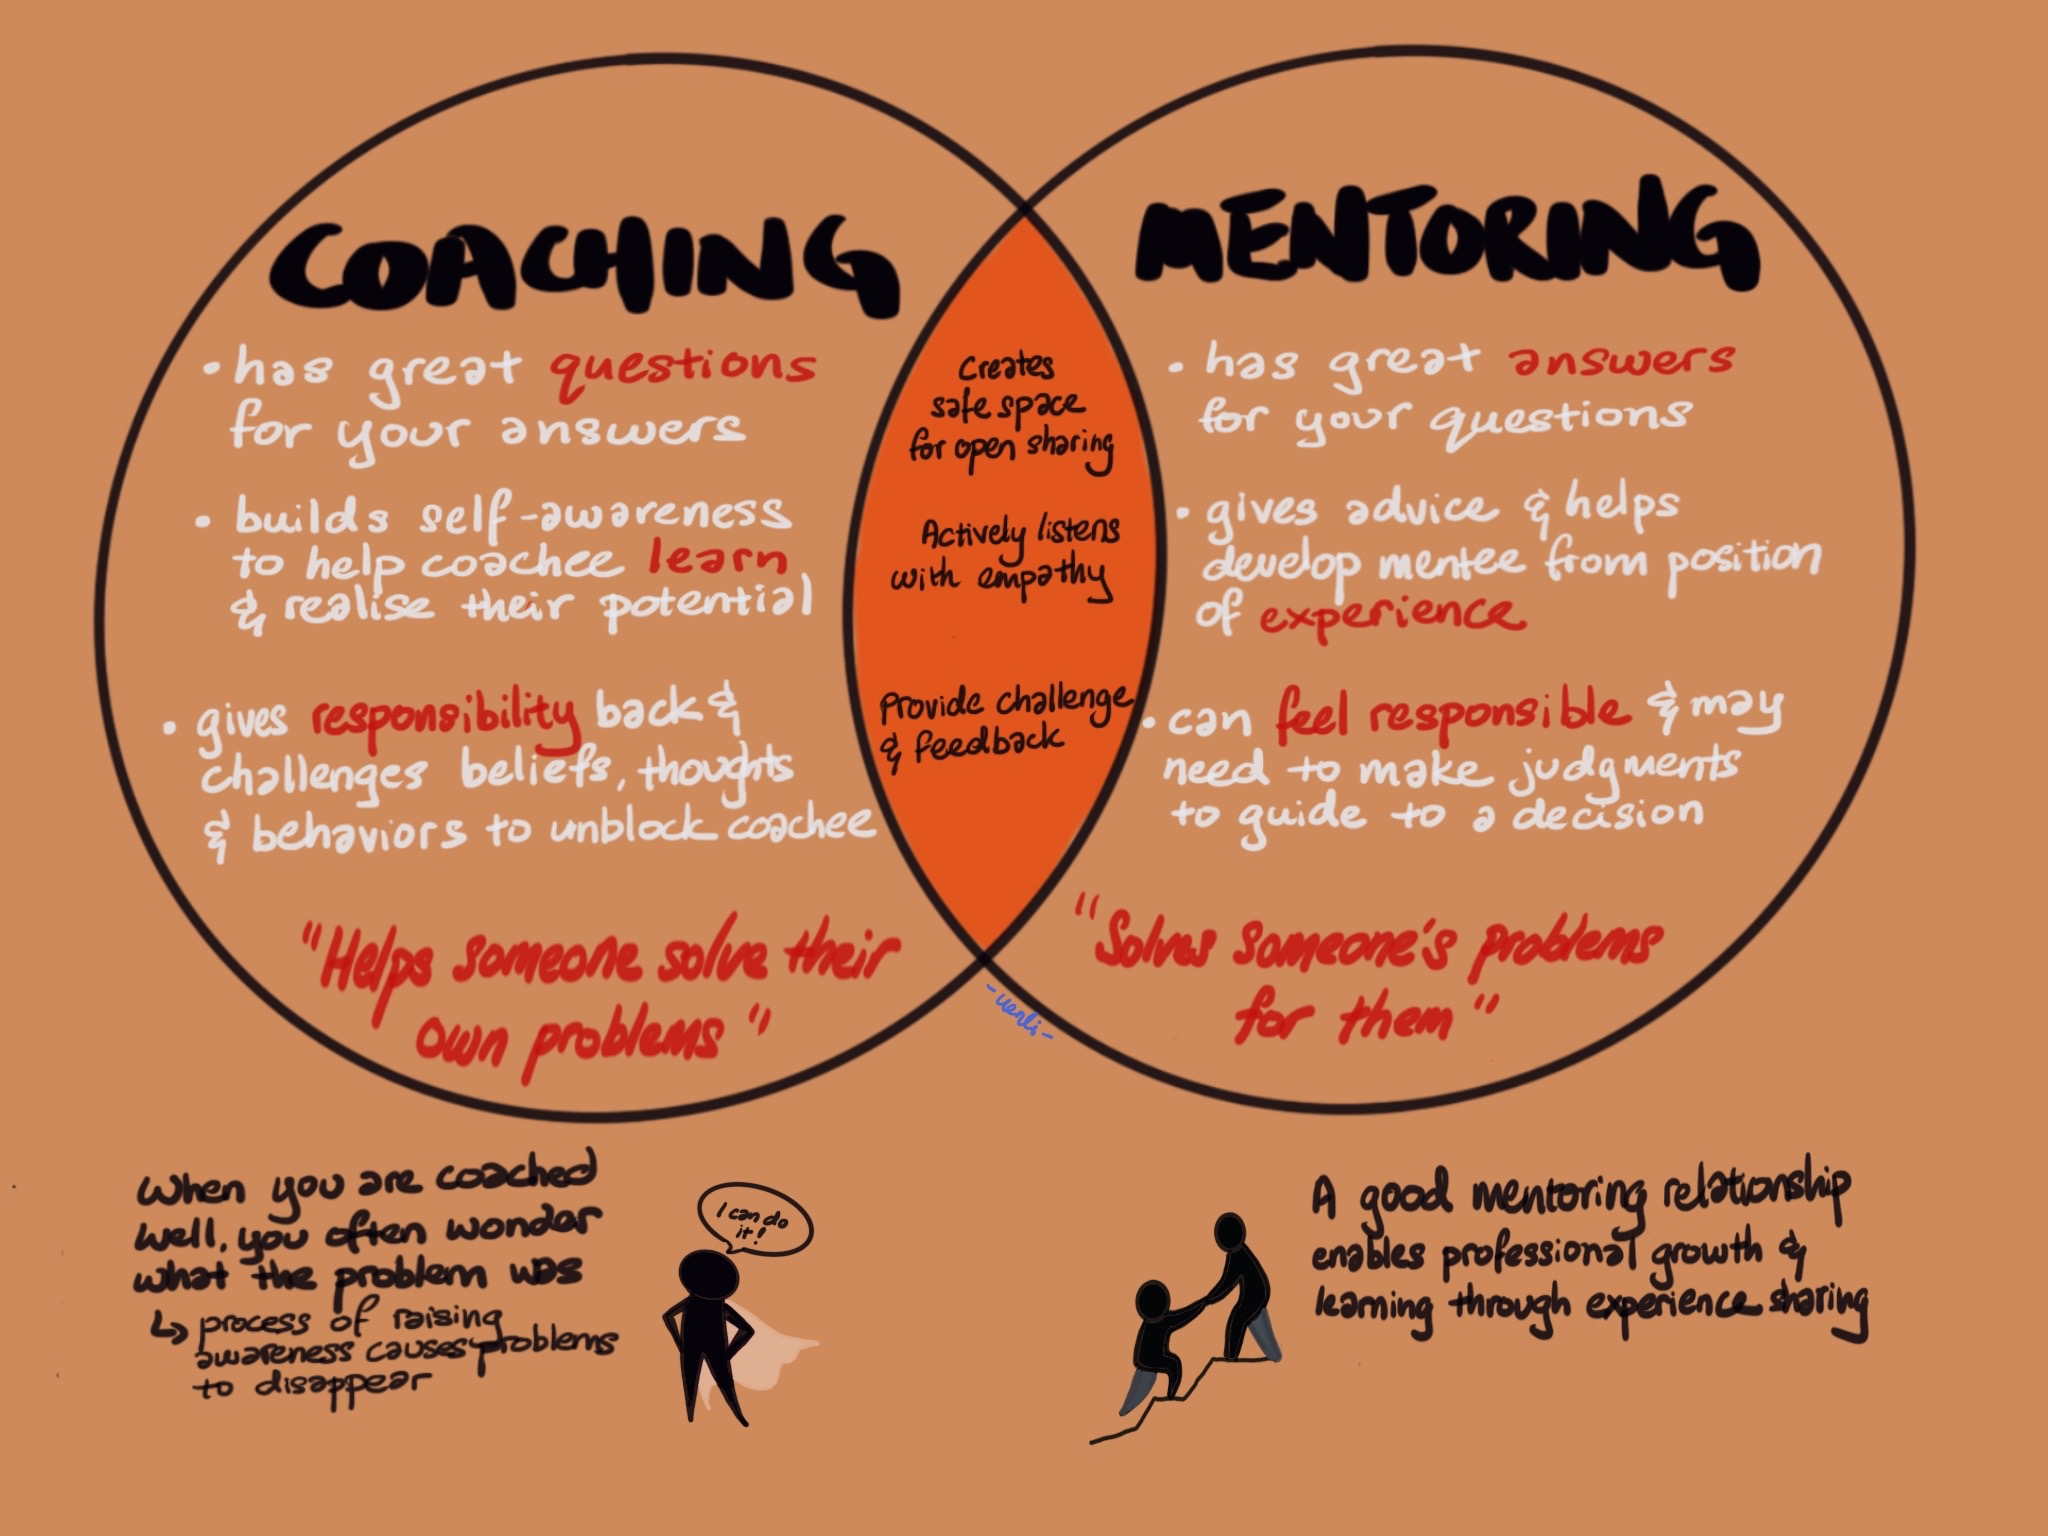 Coaching and Mentoring Image